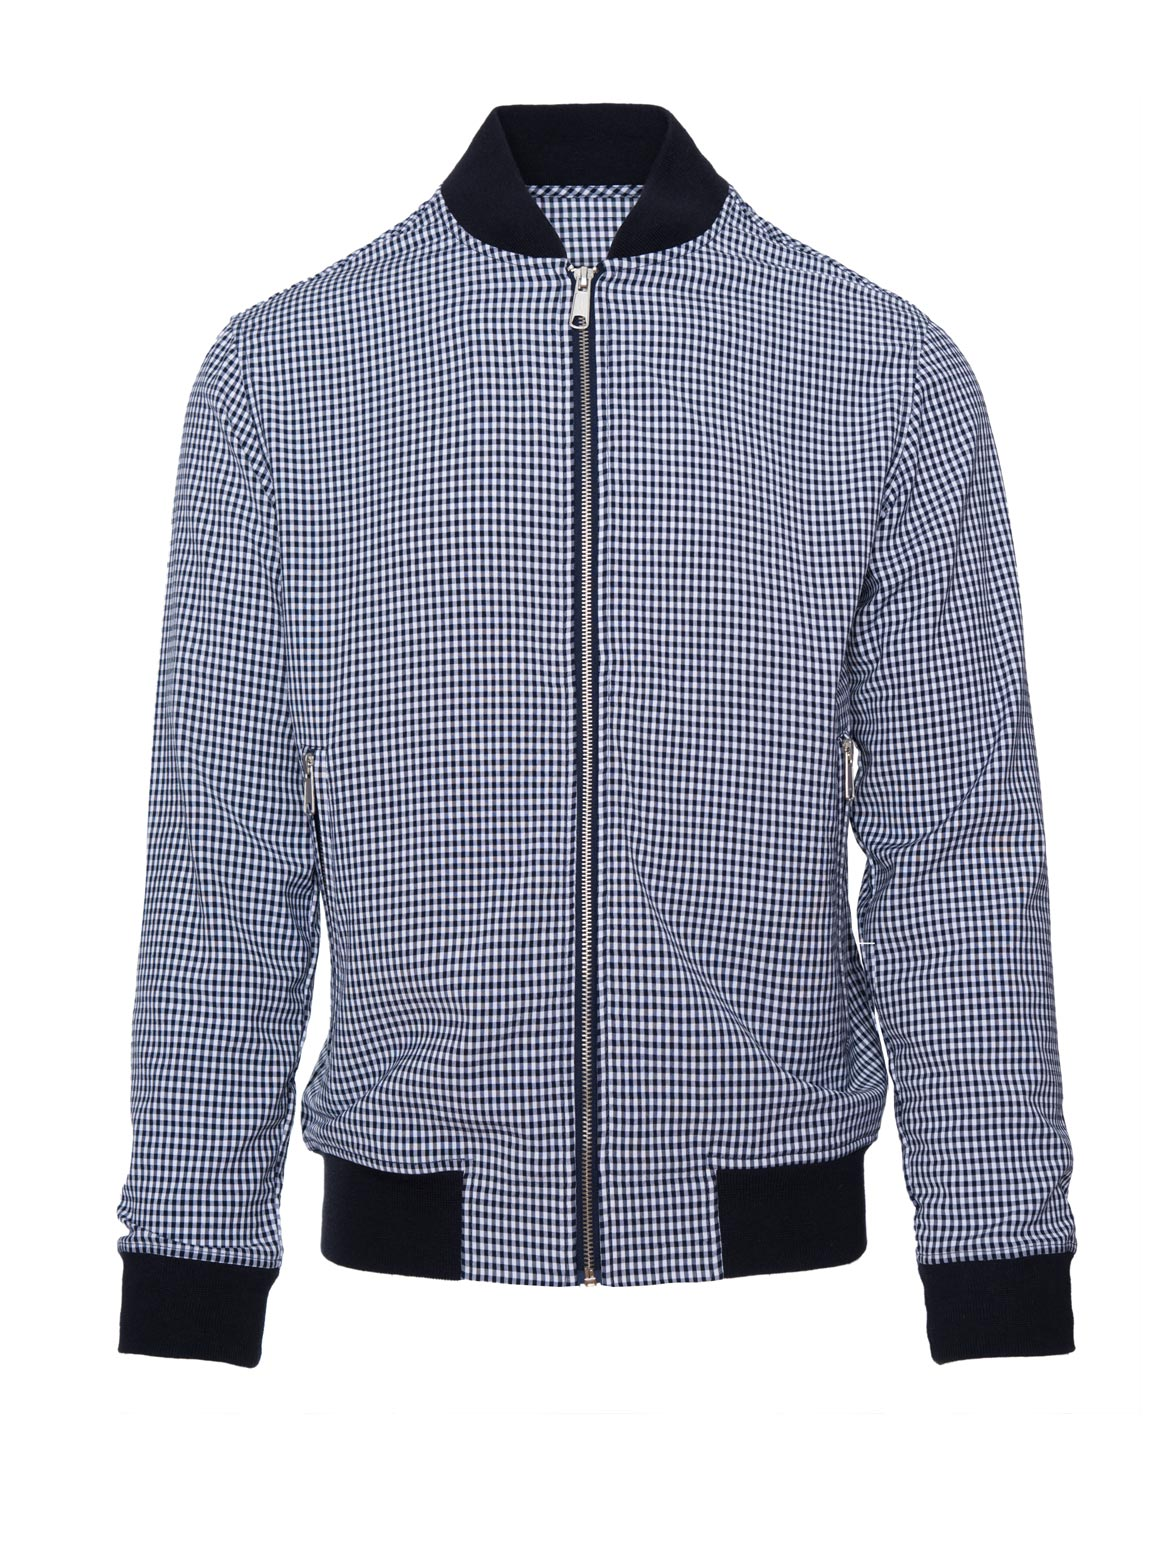 paisley & gray navy gingham slim fit crew neck collar bomber jacket 2180Z navy ribbed hem solid silver zipper slant pockets fitted waist elasticated cuffs front zip closure